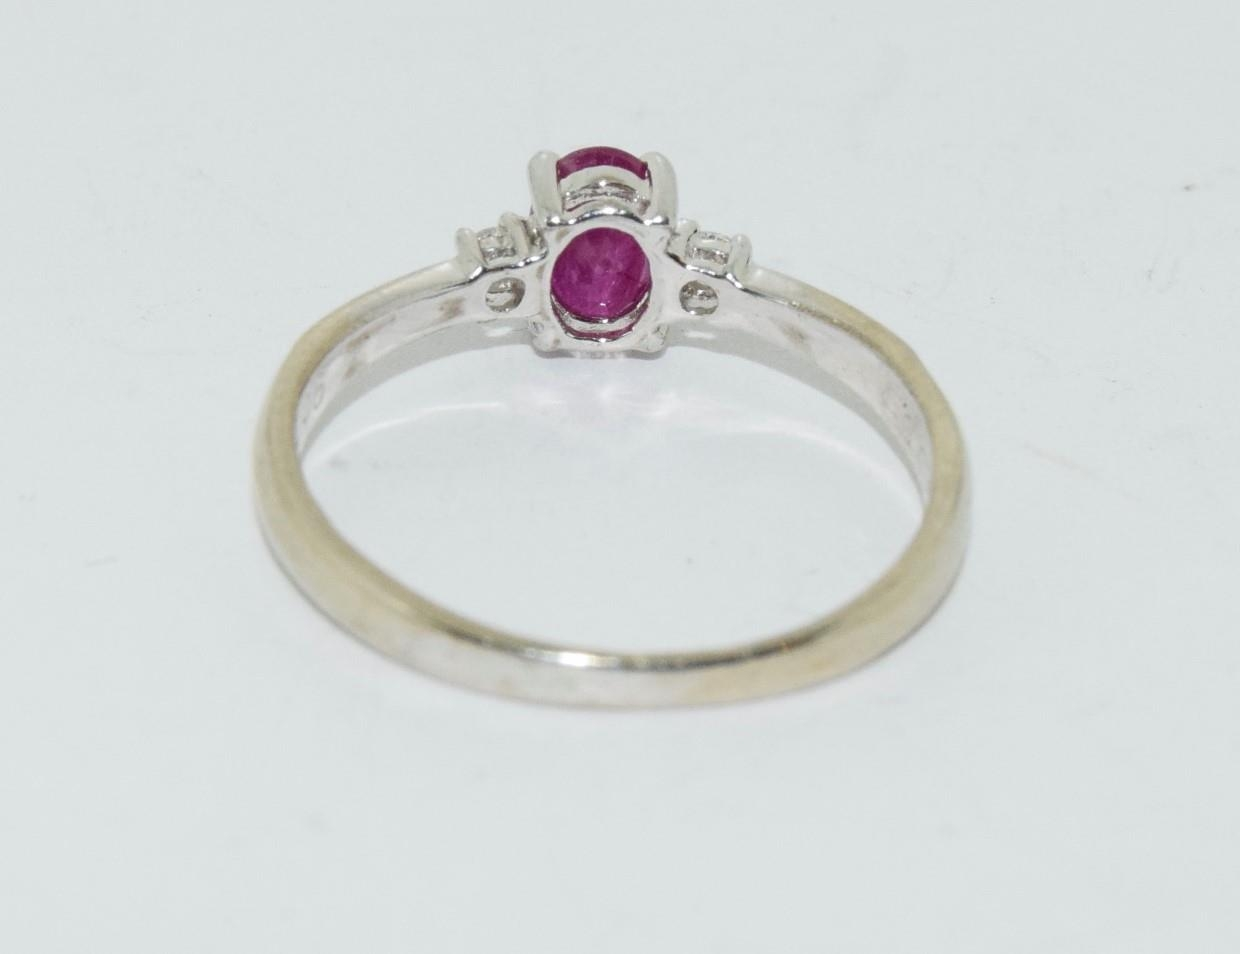 Ruby and Diamond 9ct gold ring, Size O. - Image 3 of 6